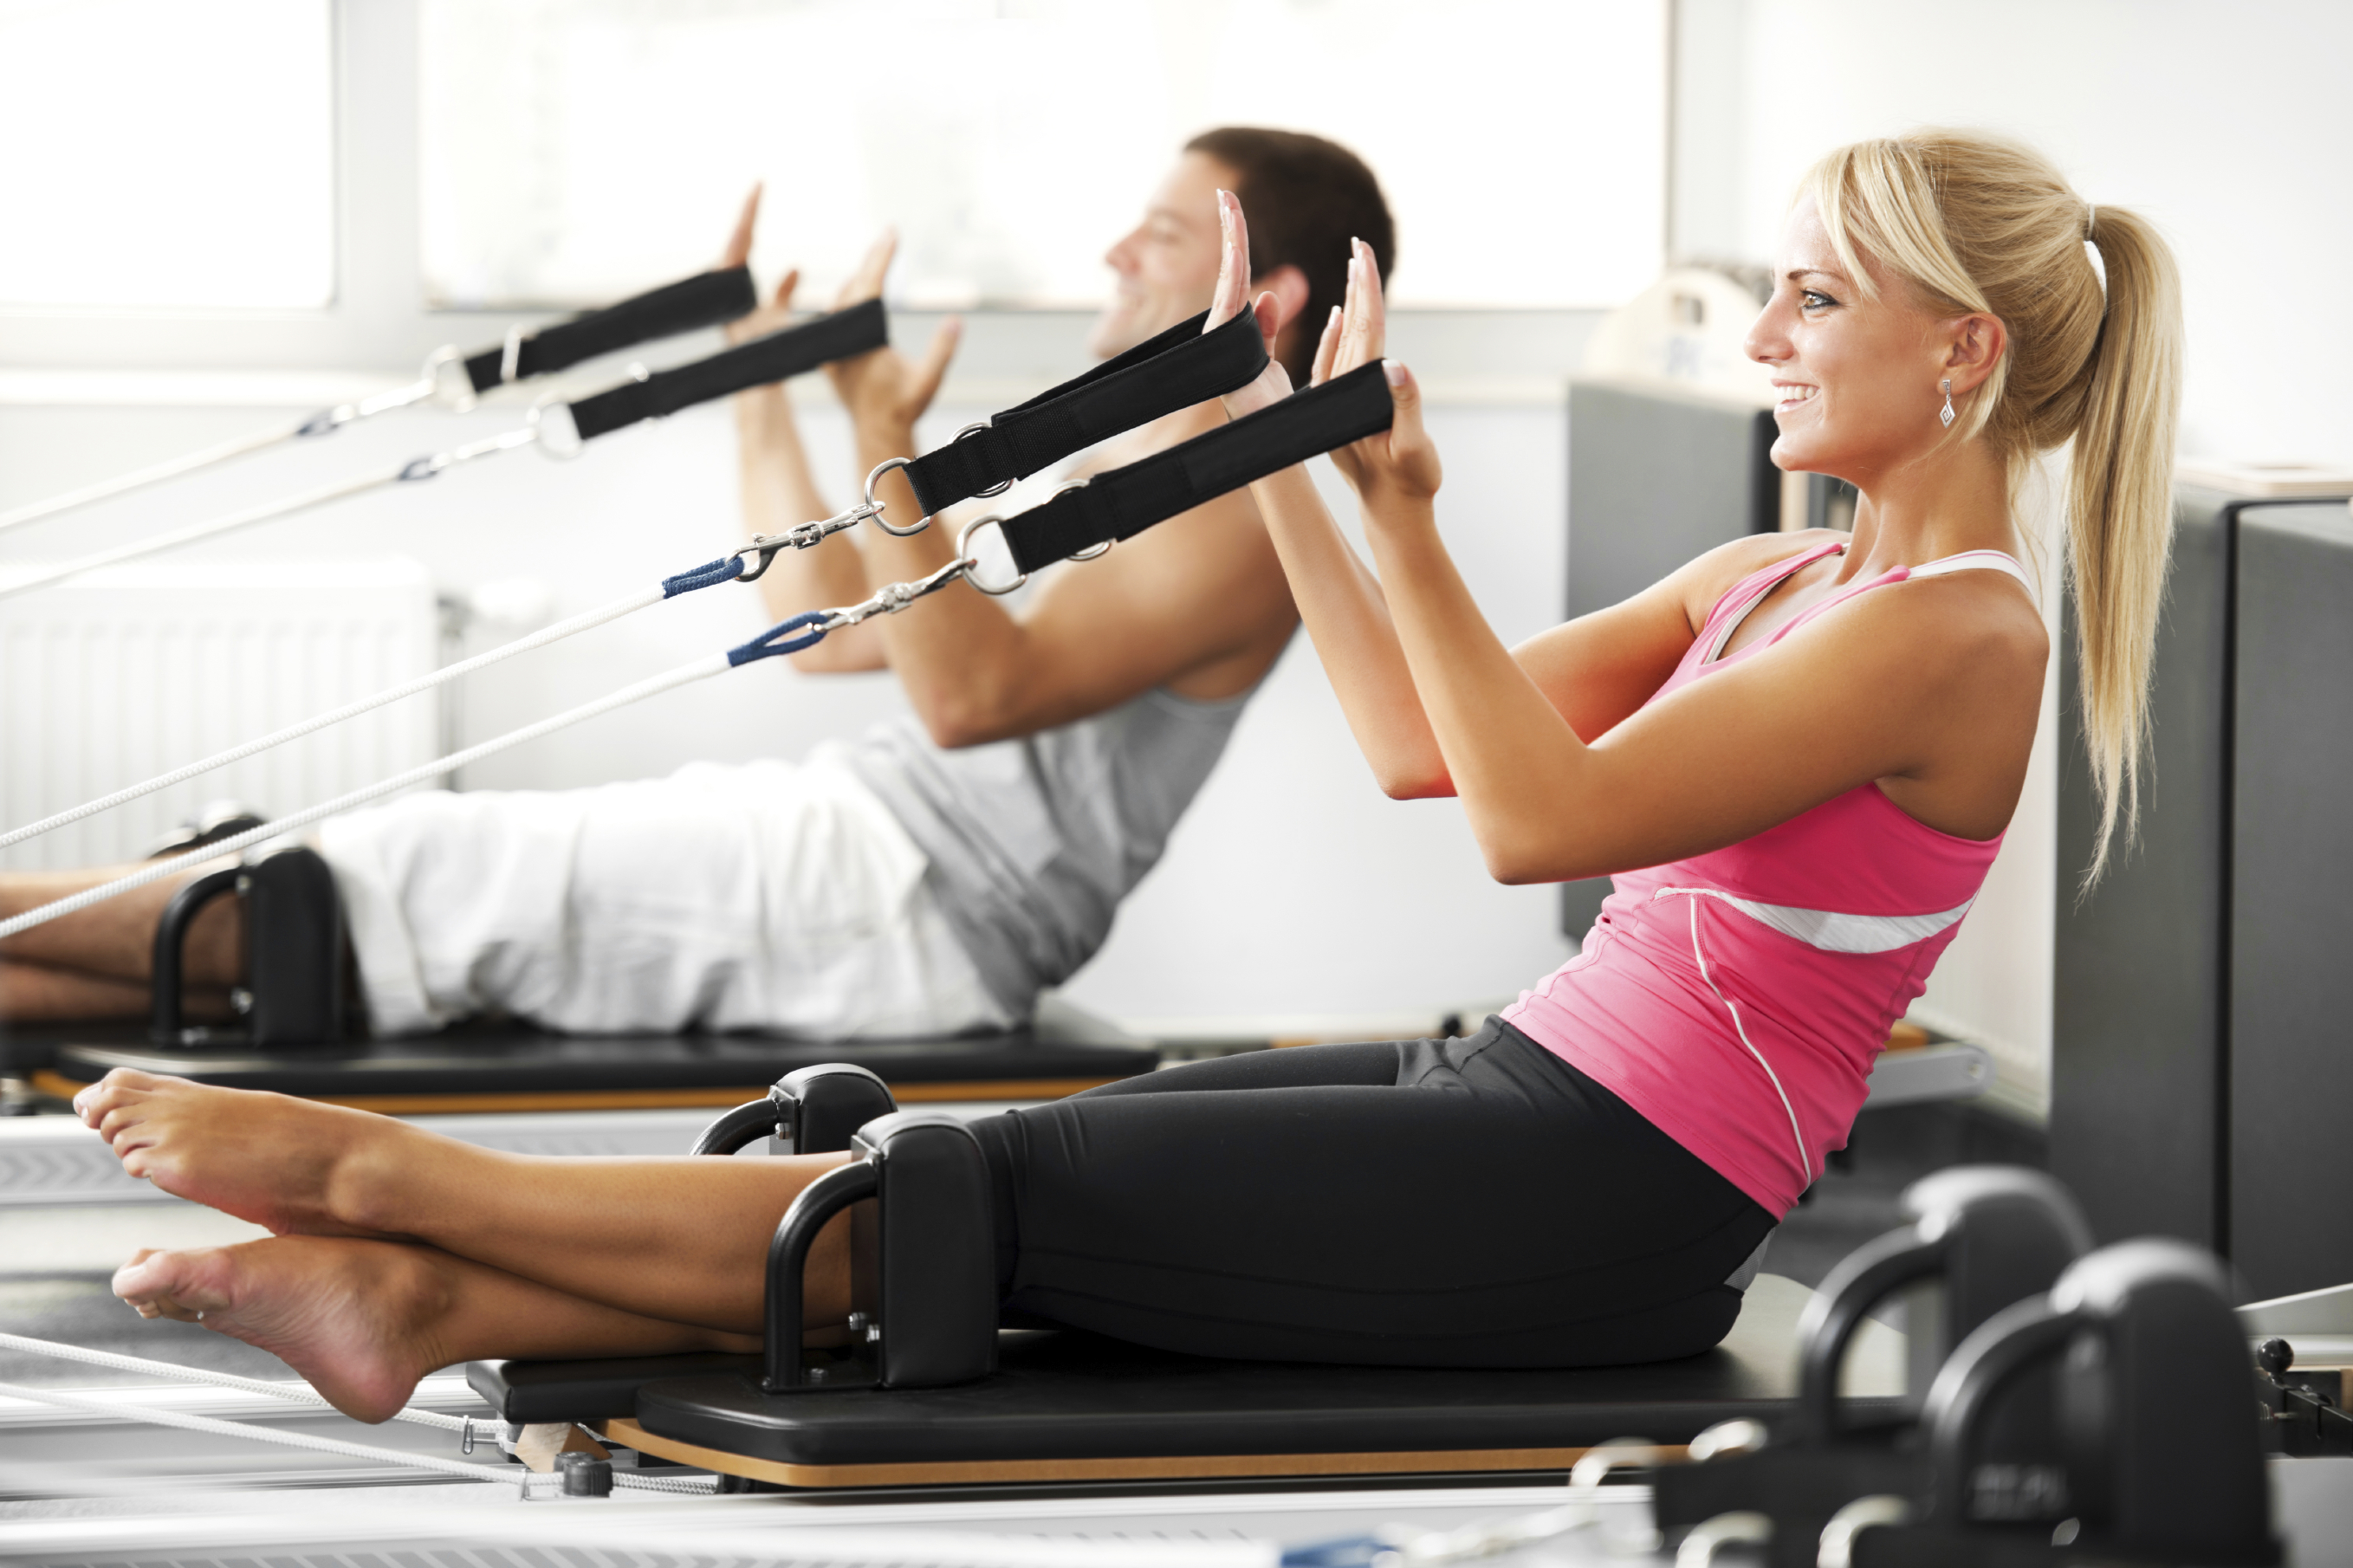 Two people doing Pilates exercises.   [url=http://www.istockphoto.com/search/lightbox/9786766][img]http://dl.dropbox.com/u/40117171/sport.jpg[/img][/url]